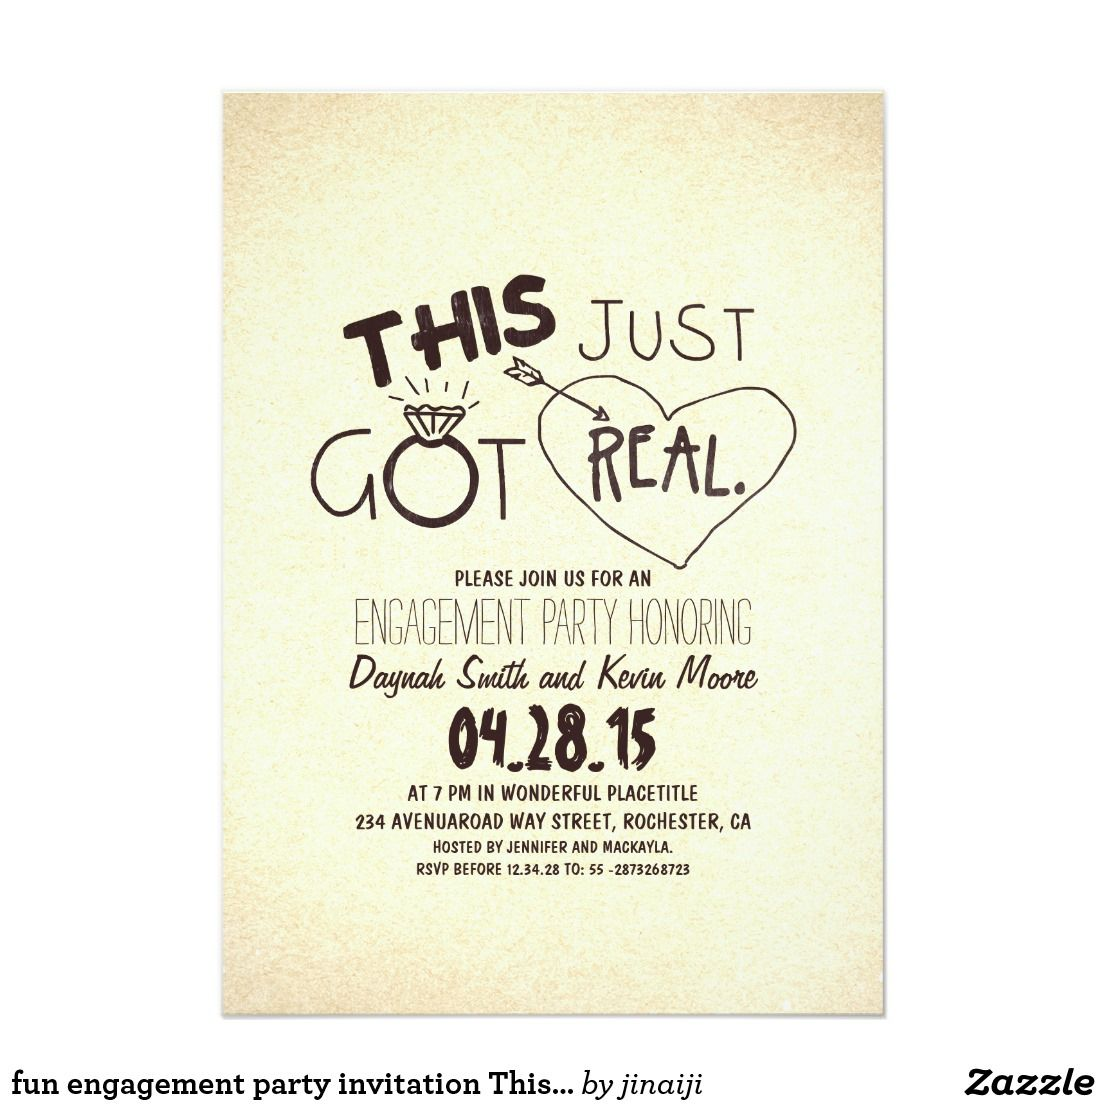 Fun Engagement Party Invitation This Just Got Real Zazzle Com Fun Engagement Party Creative Engagement Party Invitations Engagement Party